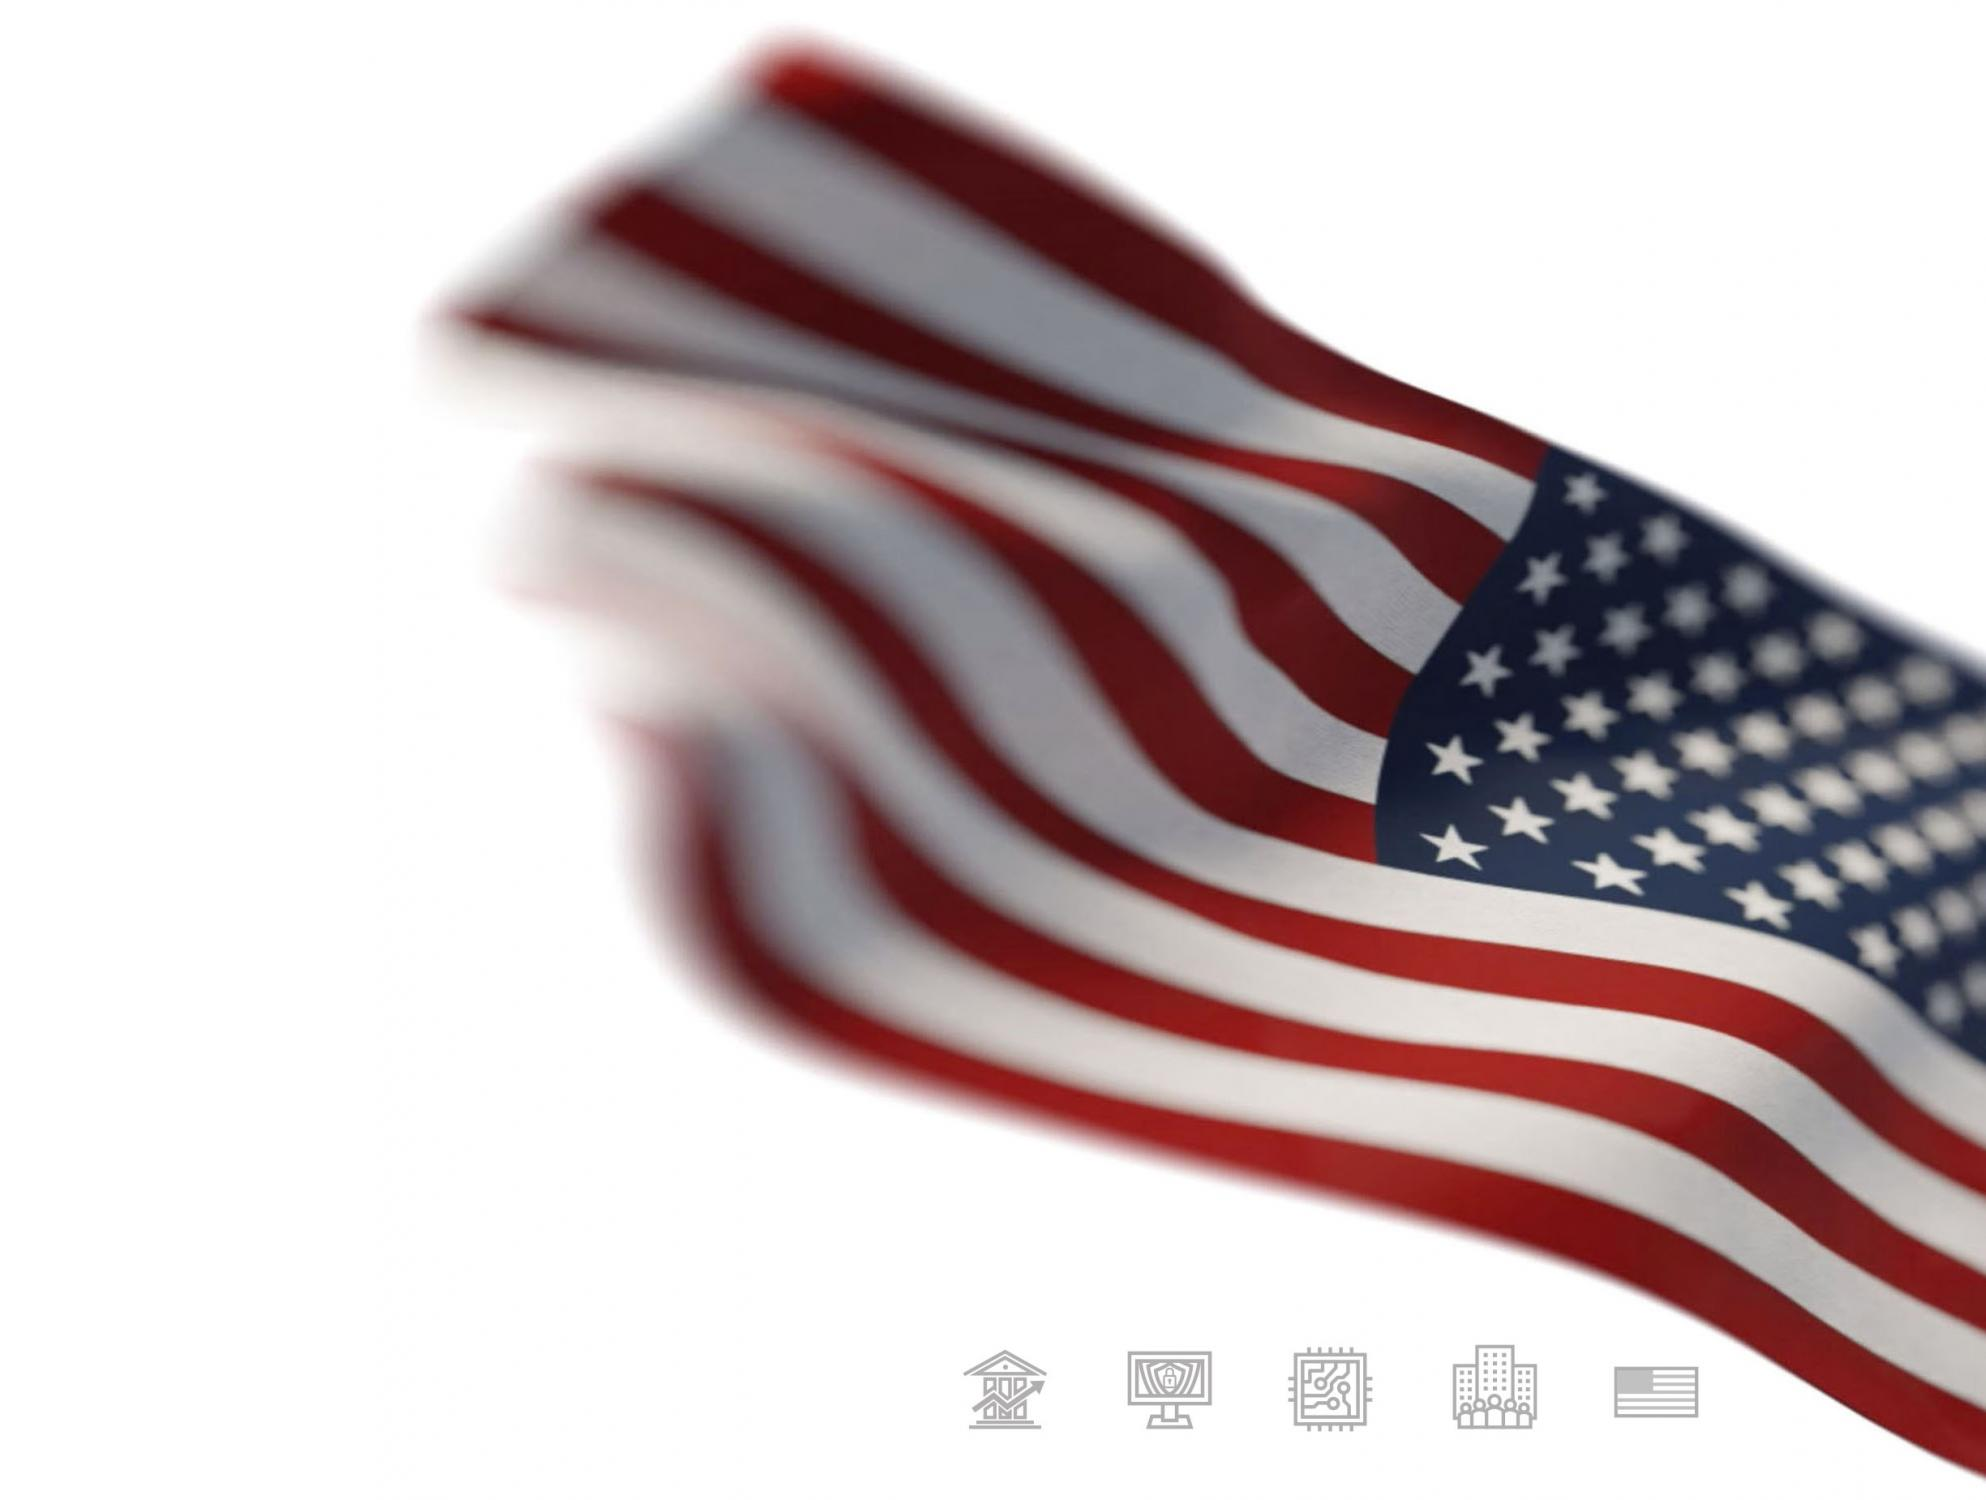 US flag 2 - icons